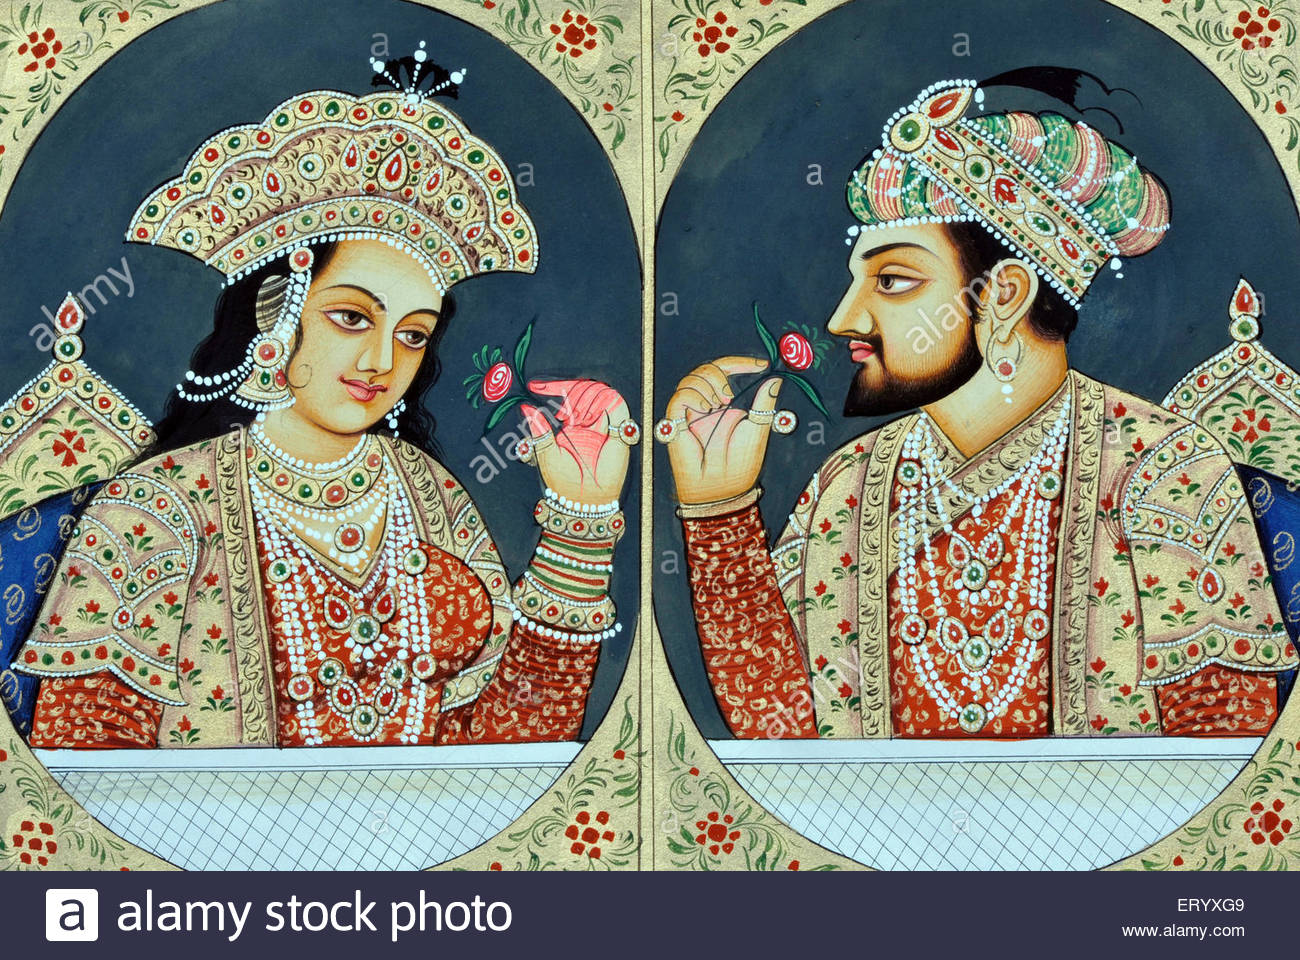 Shah Jahan Stock Photos & Shah Jahan Stock Images.